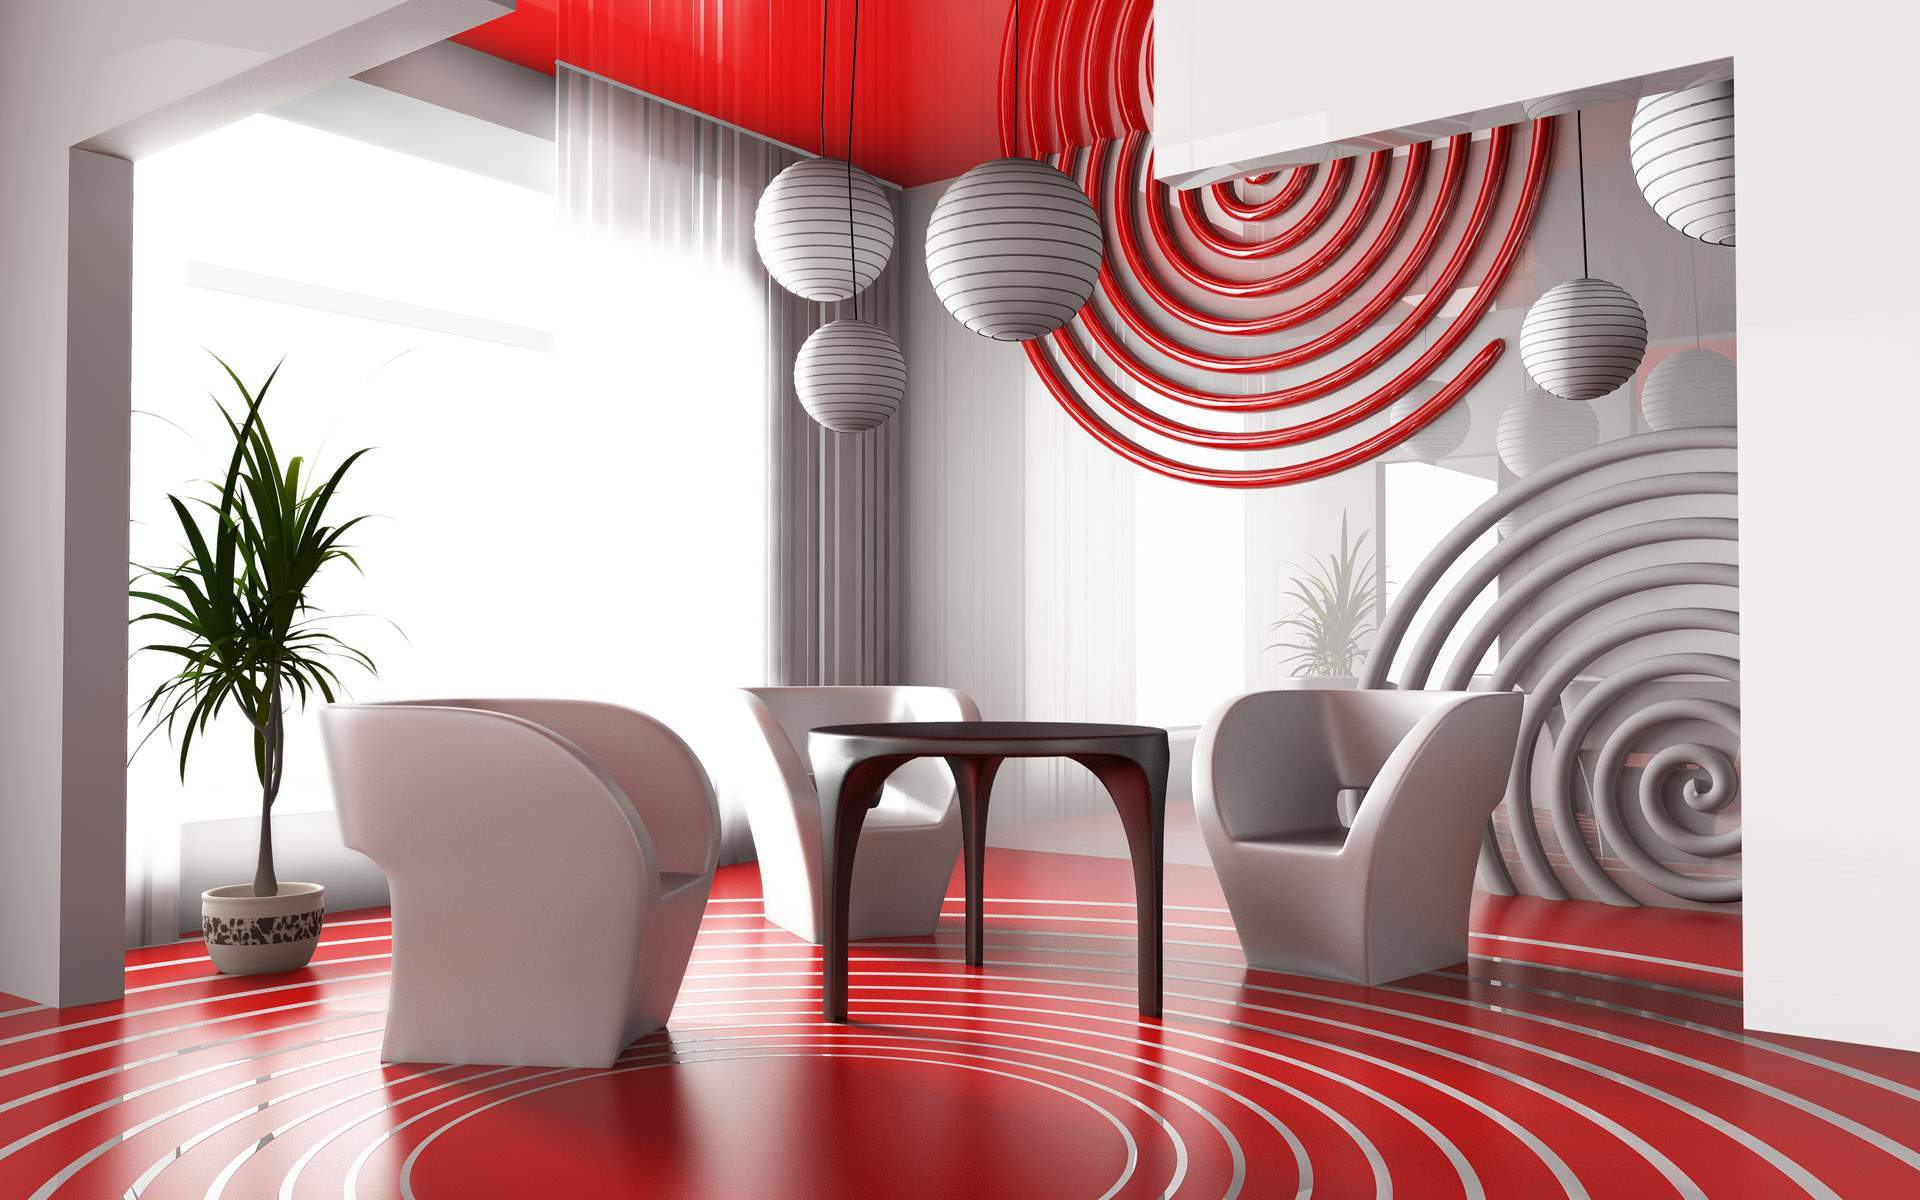 circularize-deep-red-living-room-design-with-architectural-meeting-table-and-plant-as-accessories